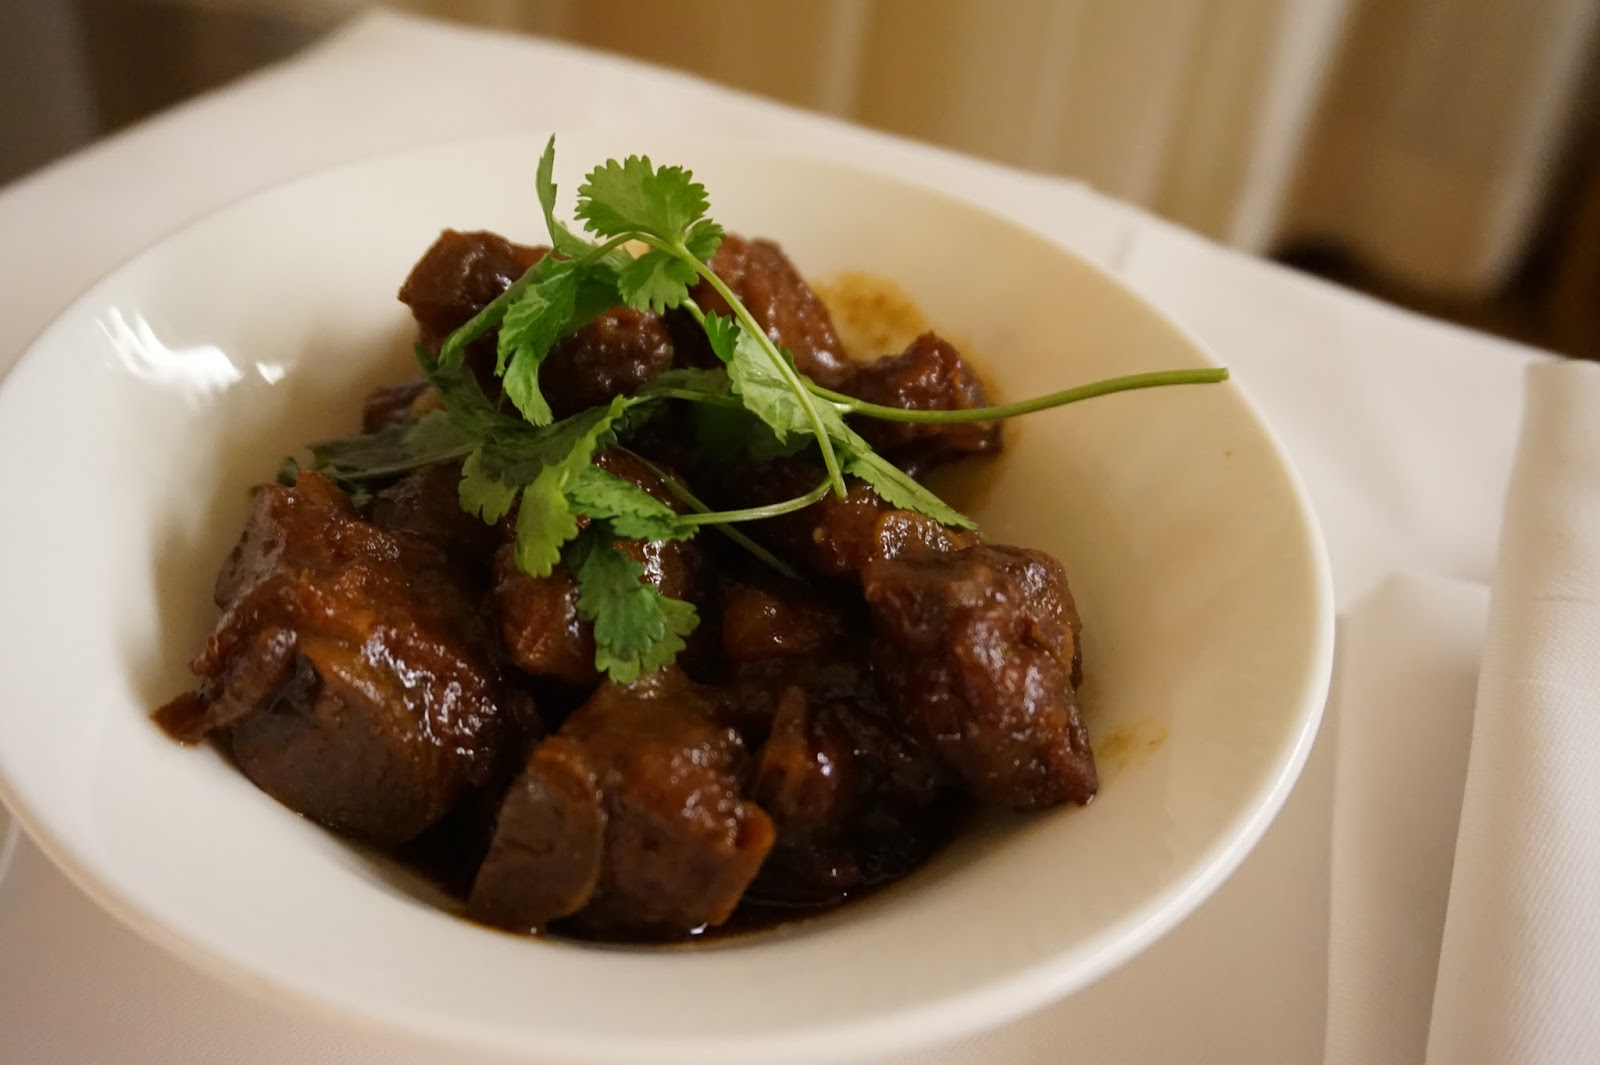 portman ritz-carlton shanghai china prc hotel review shanghainese bbq ribs food room service